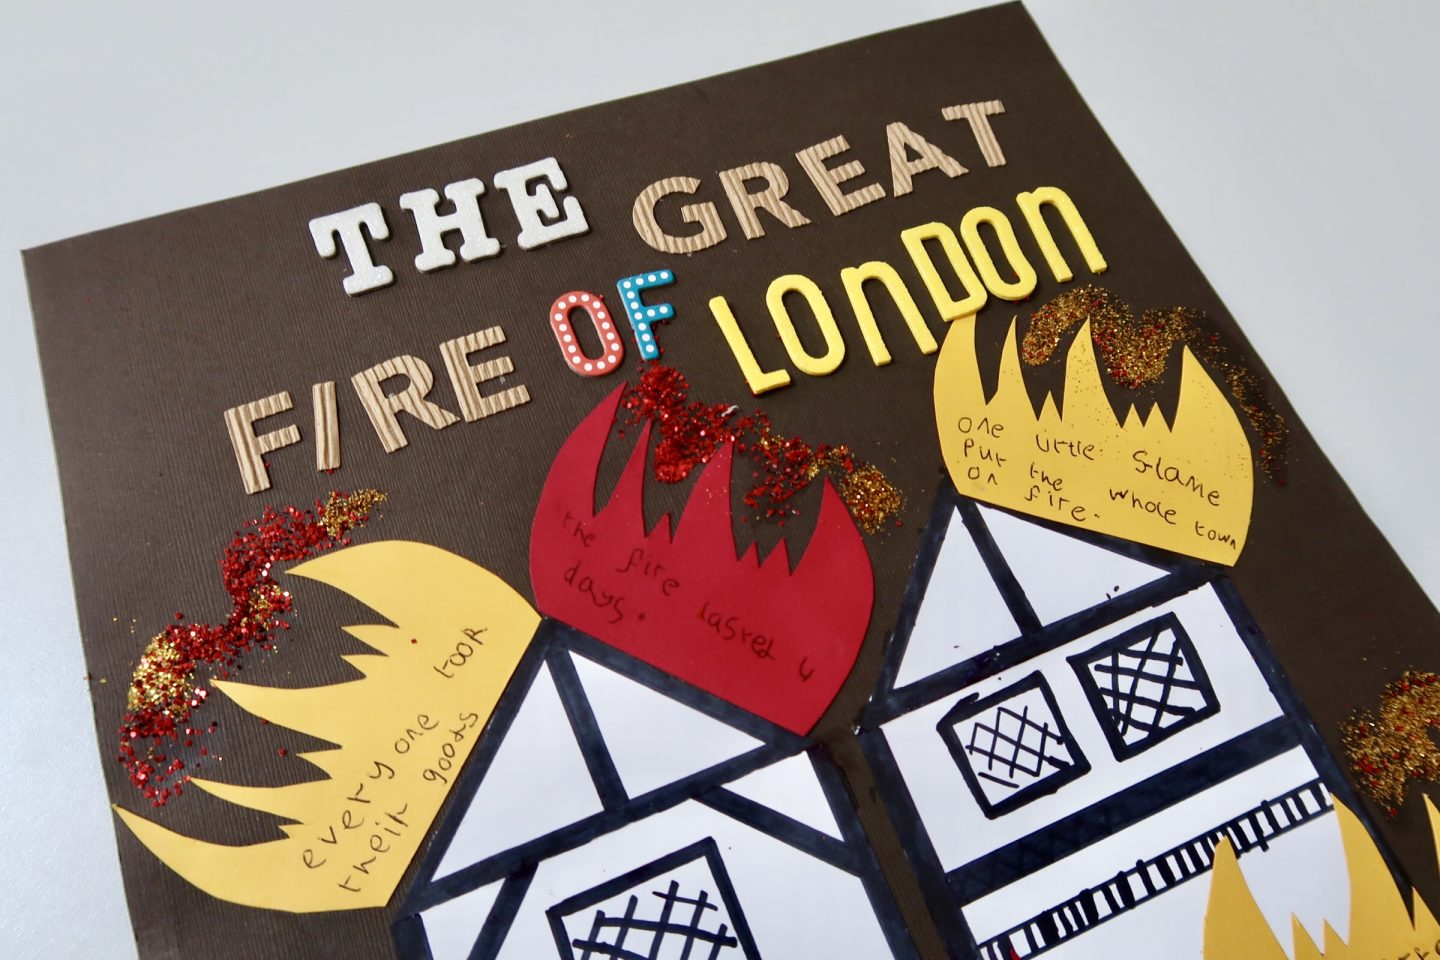 The great fire of London crafts